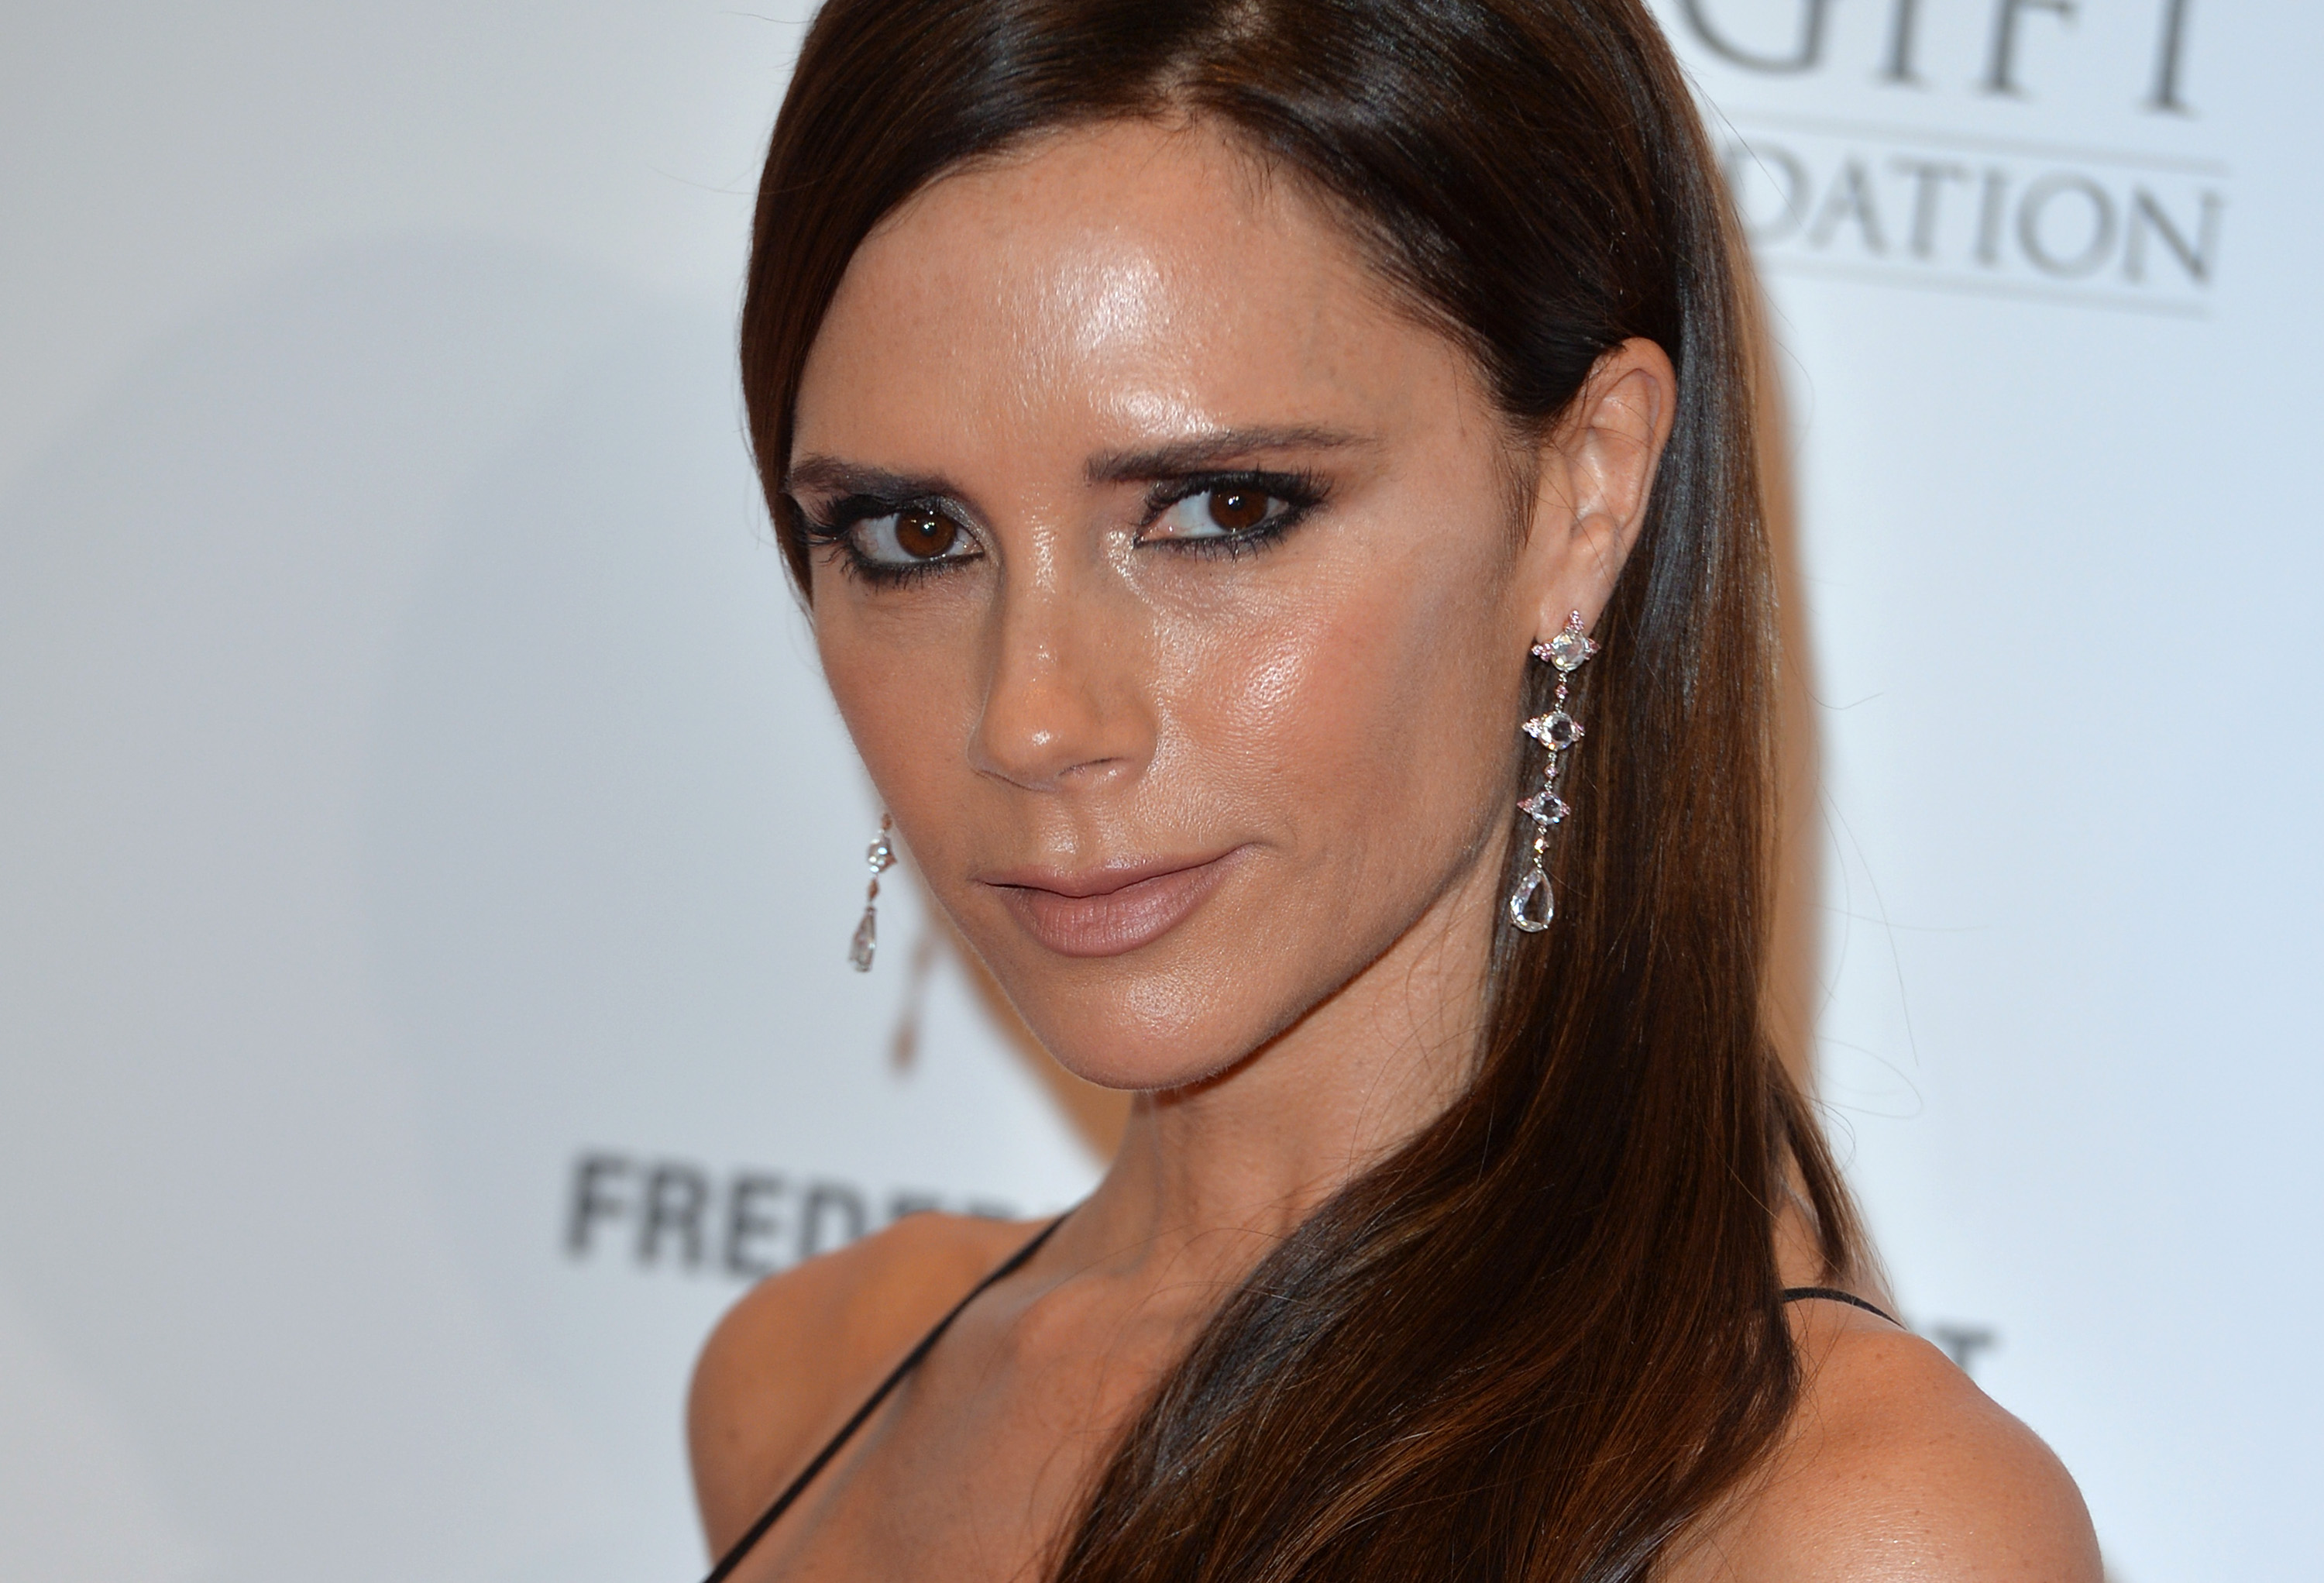 Victoria Beckham set to receive an OBE for her services to fashion and charity